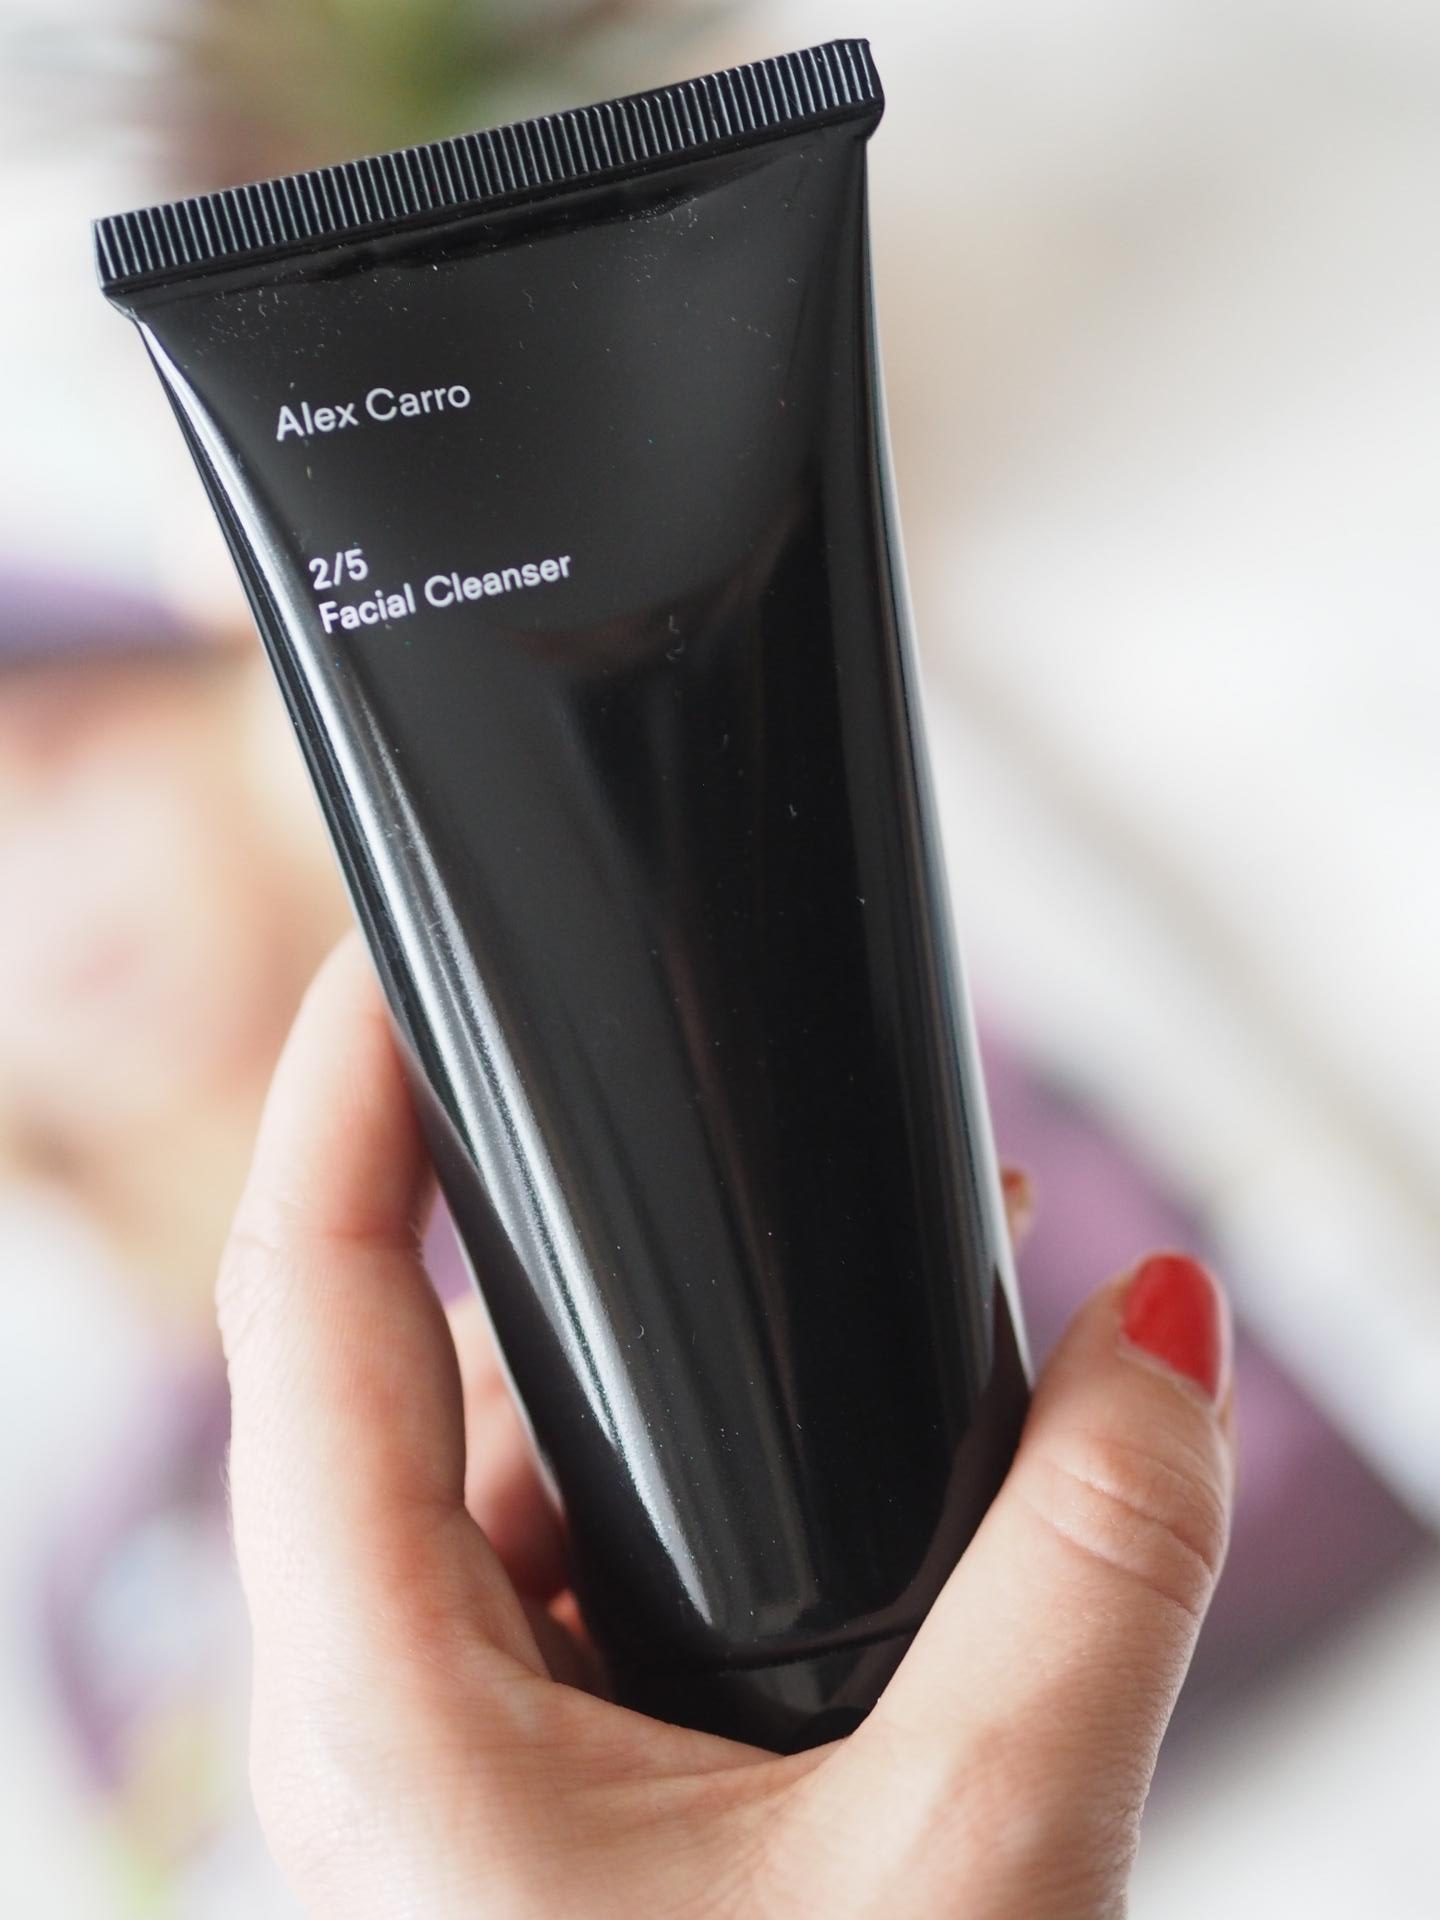 Best Natural Cleansers - Product Alex Carro 2/5 Facial Cleanser